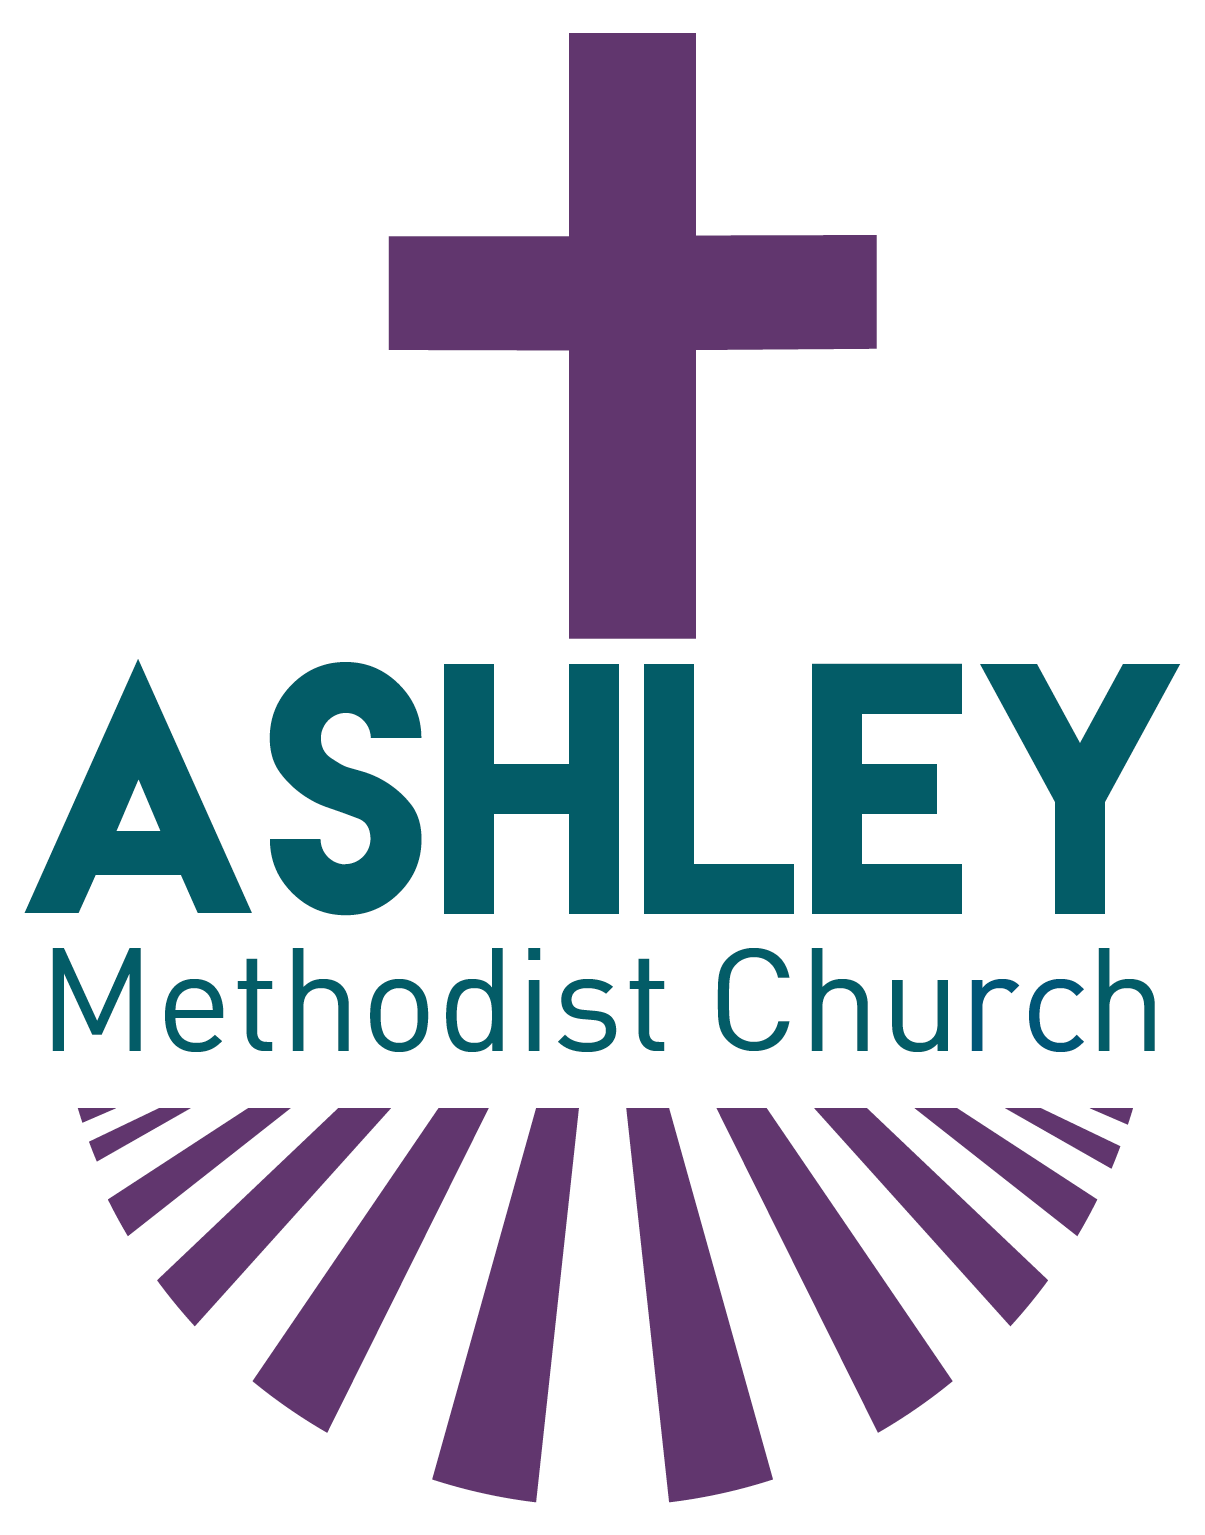 Ashley Methodist Church